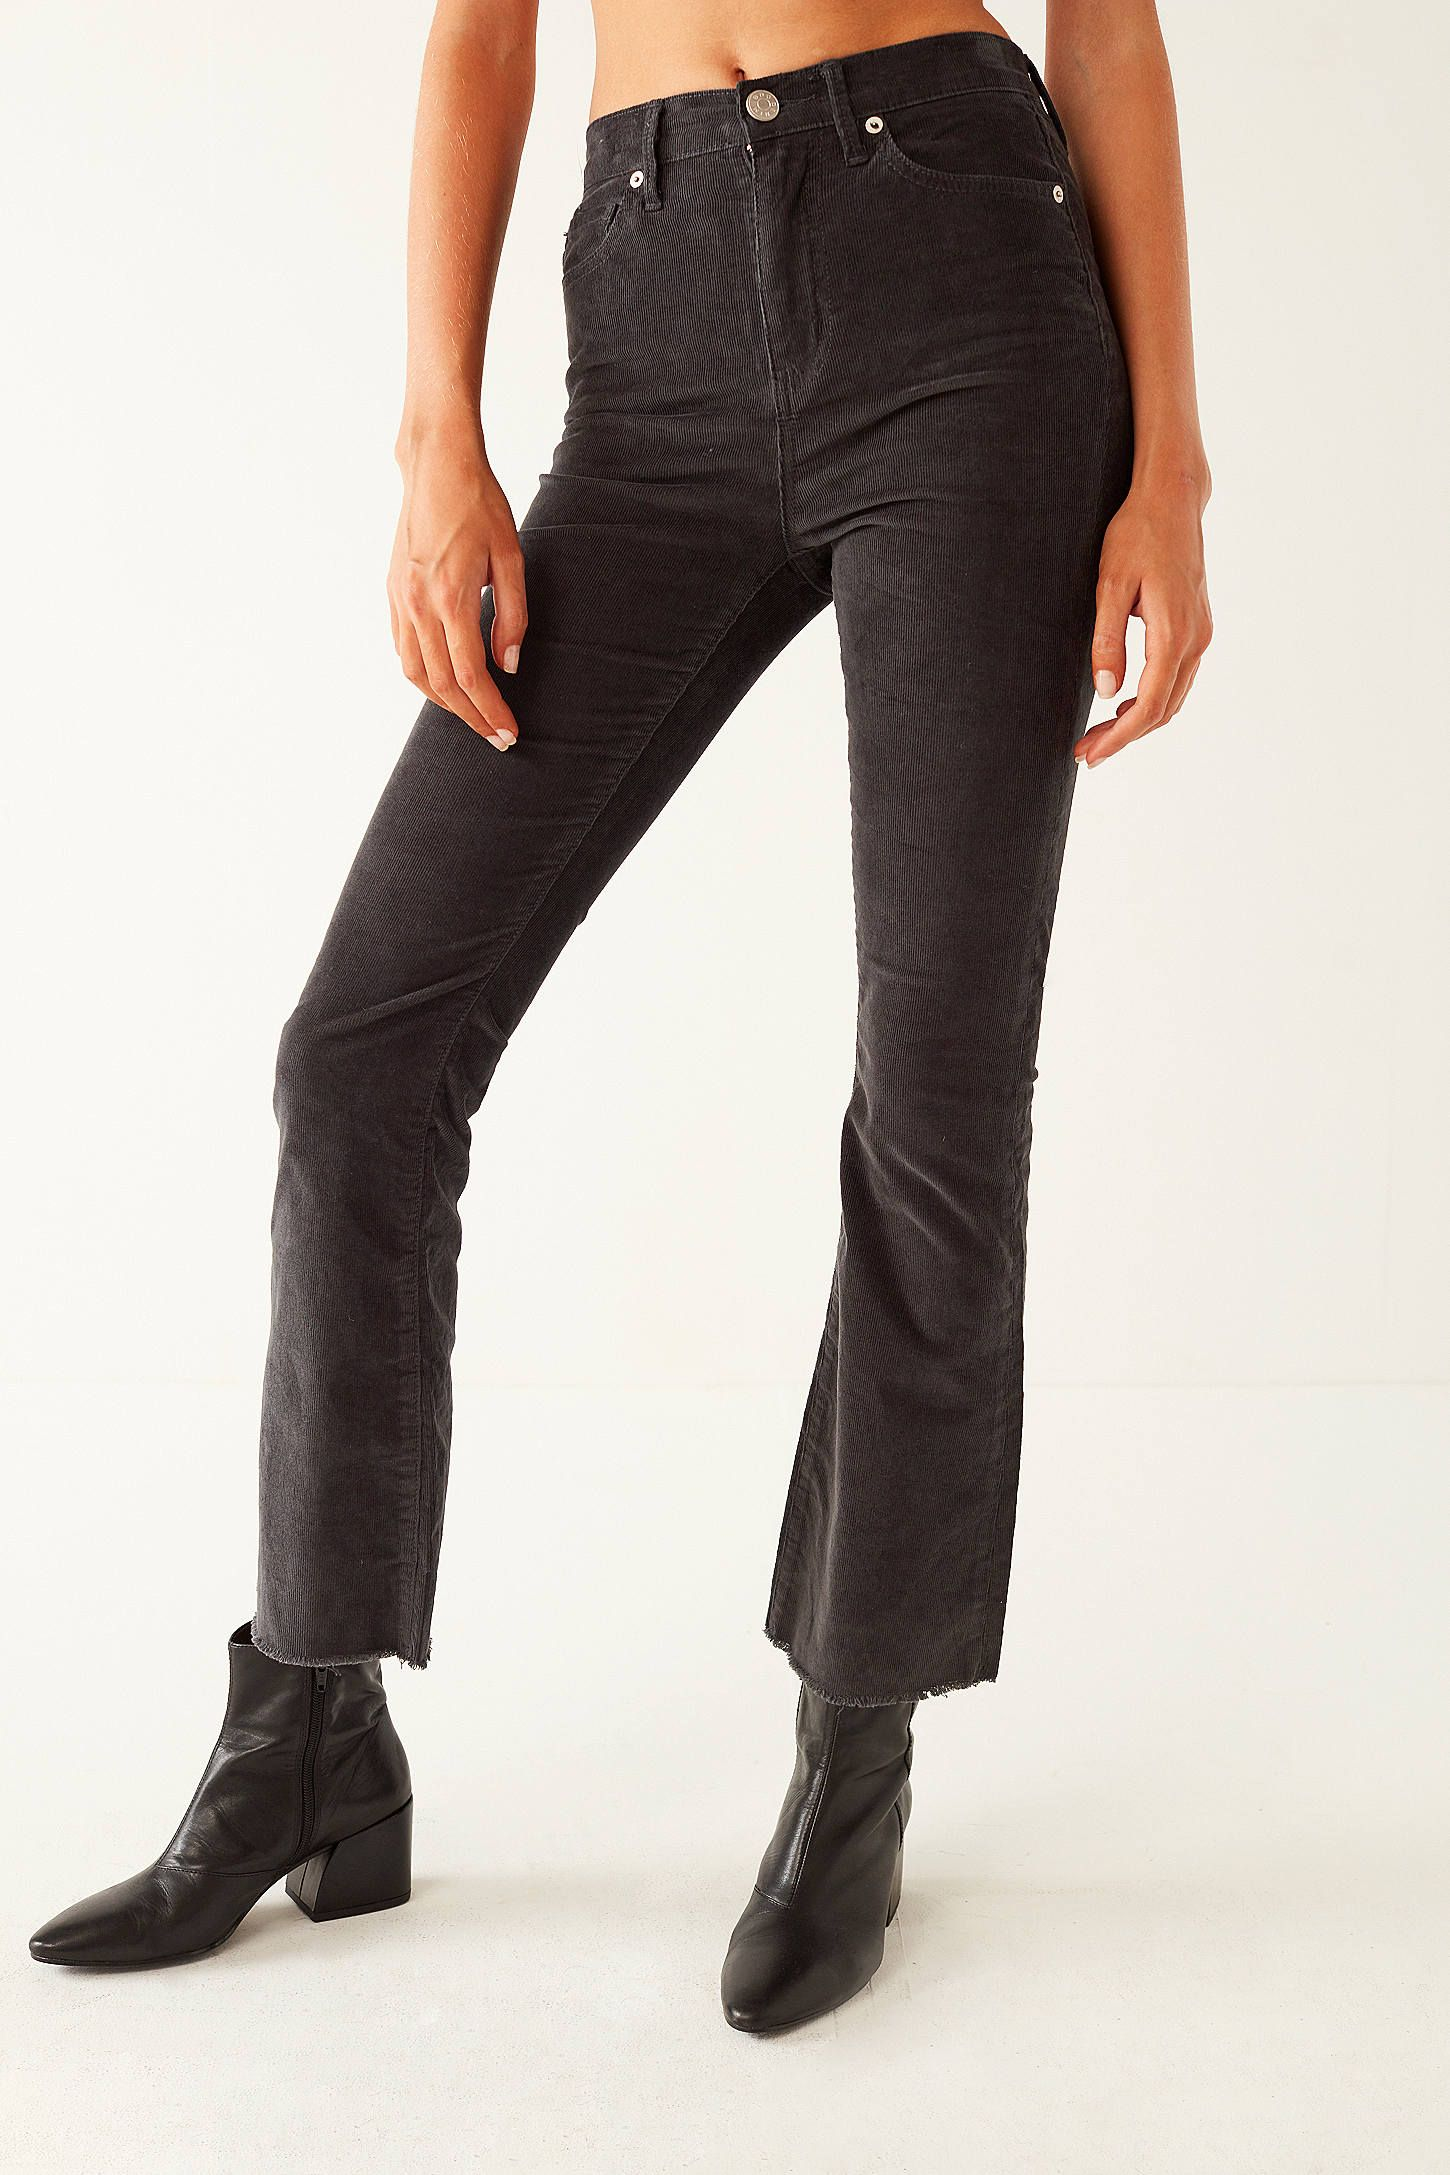 dc8e6c523f Shop BDG Kick Flare High-Rise Cropped Corduroy Pant at Urban Outfitters  today. We